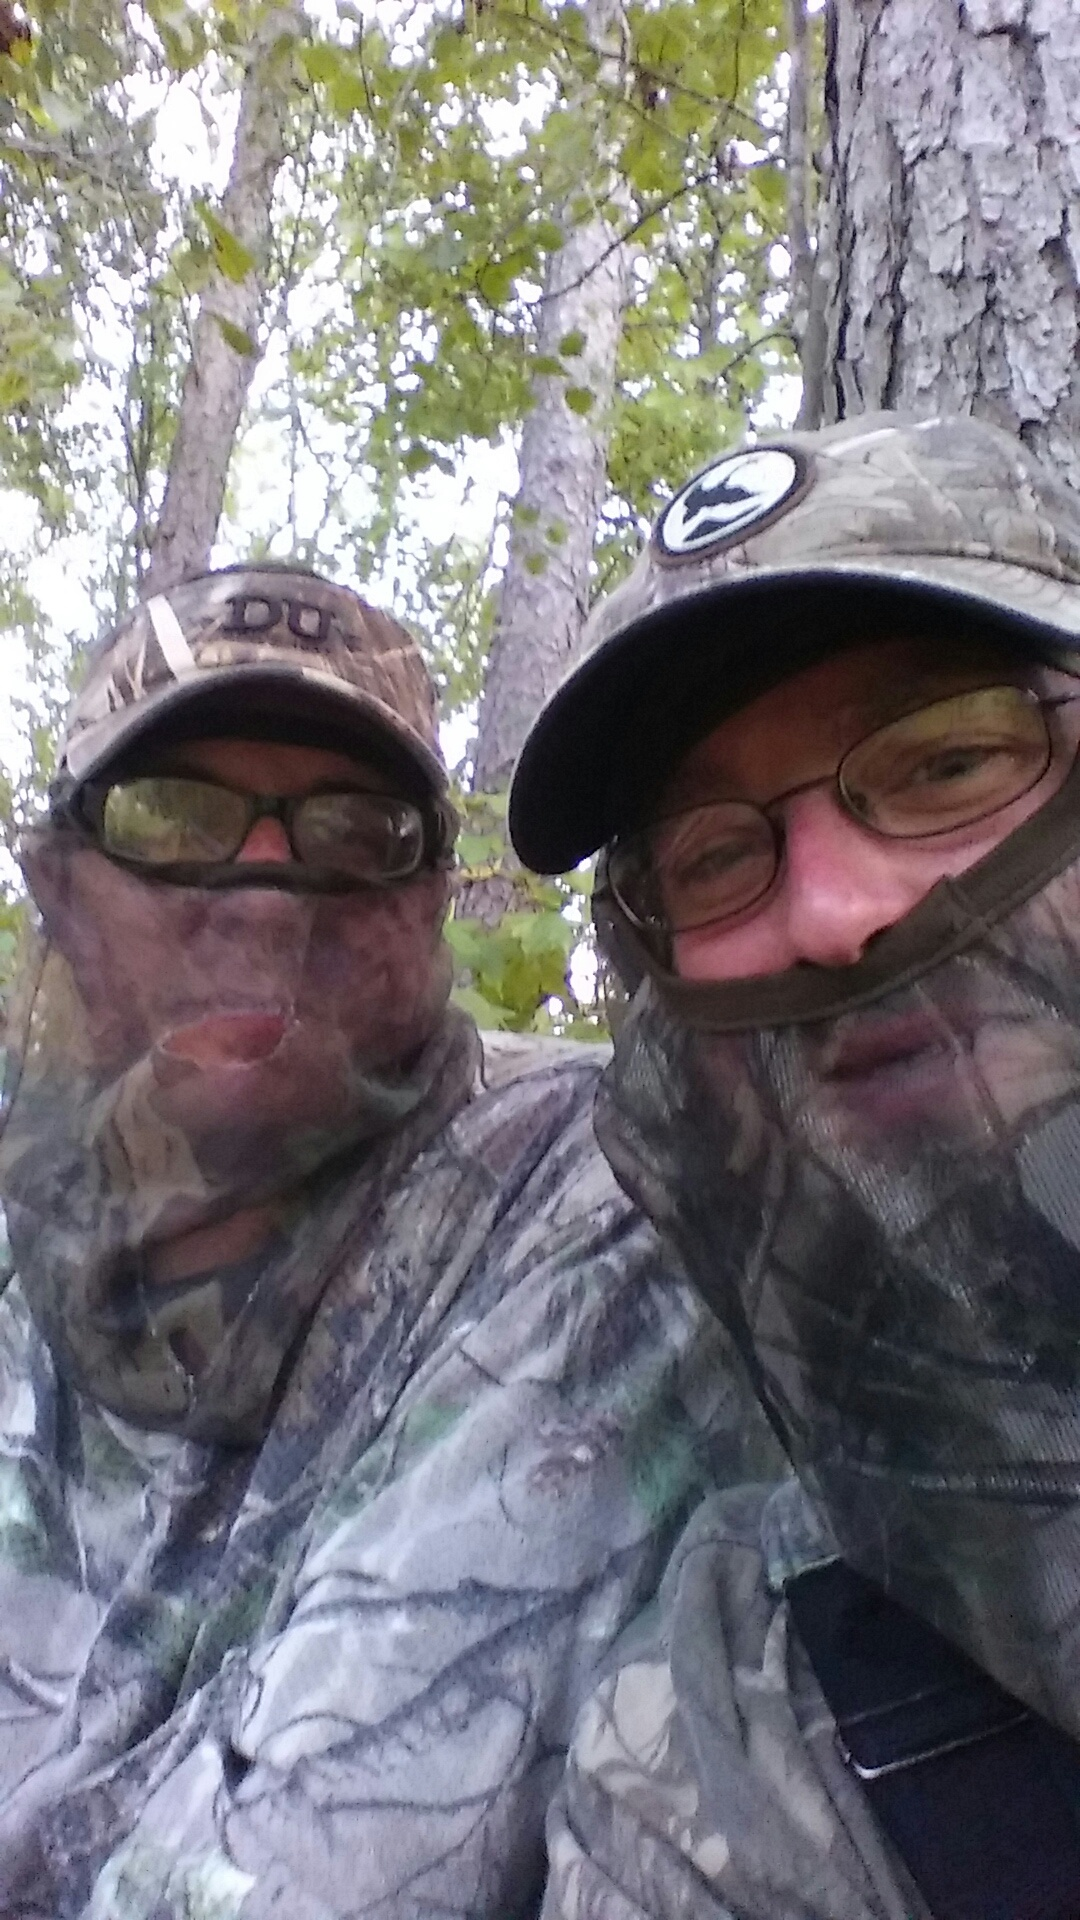 Jason and I in the stand